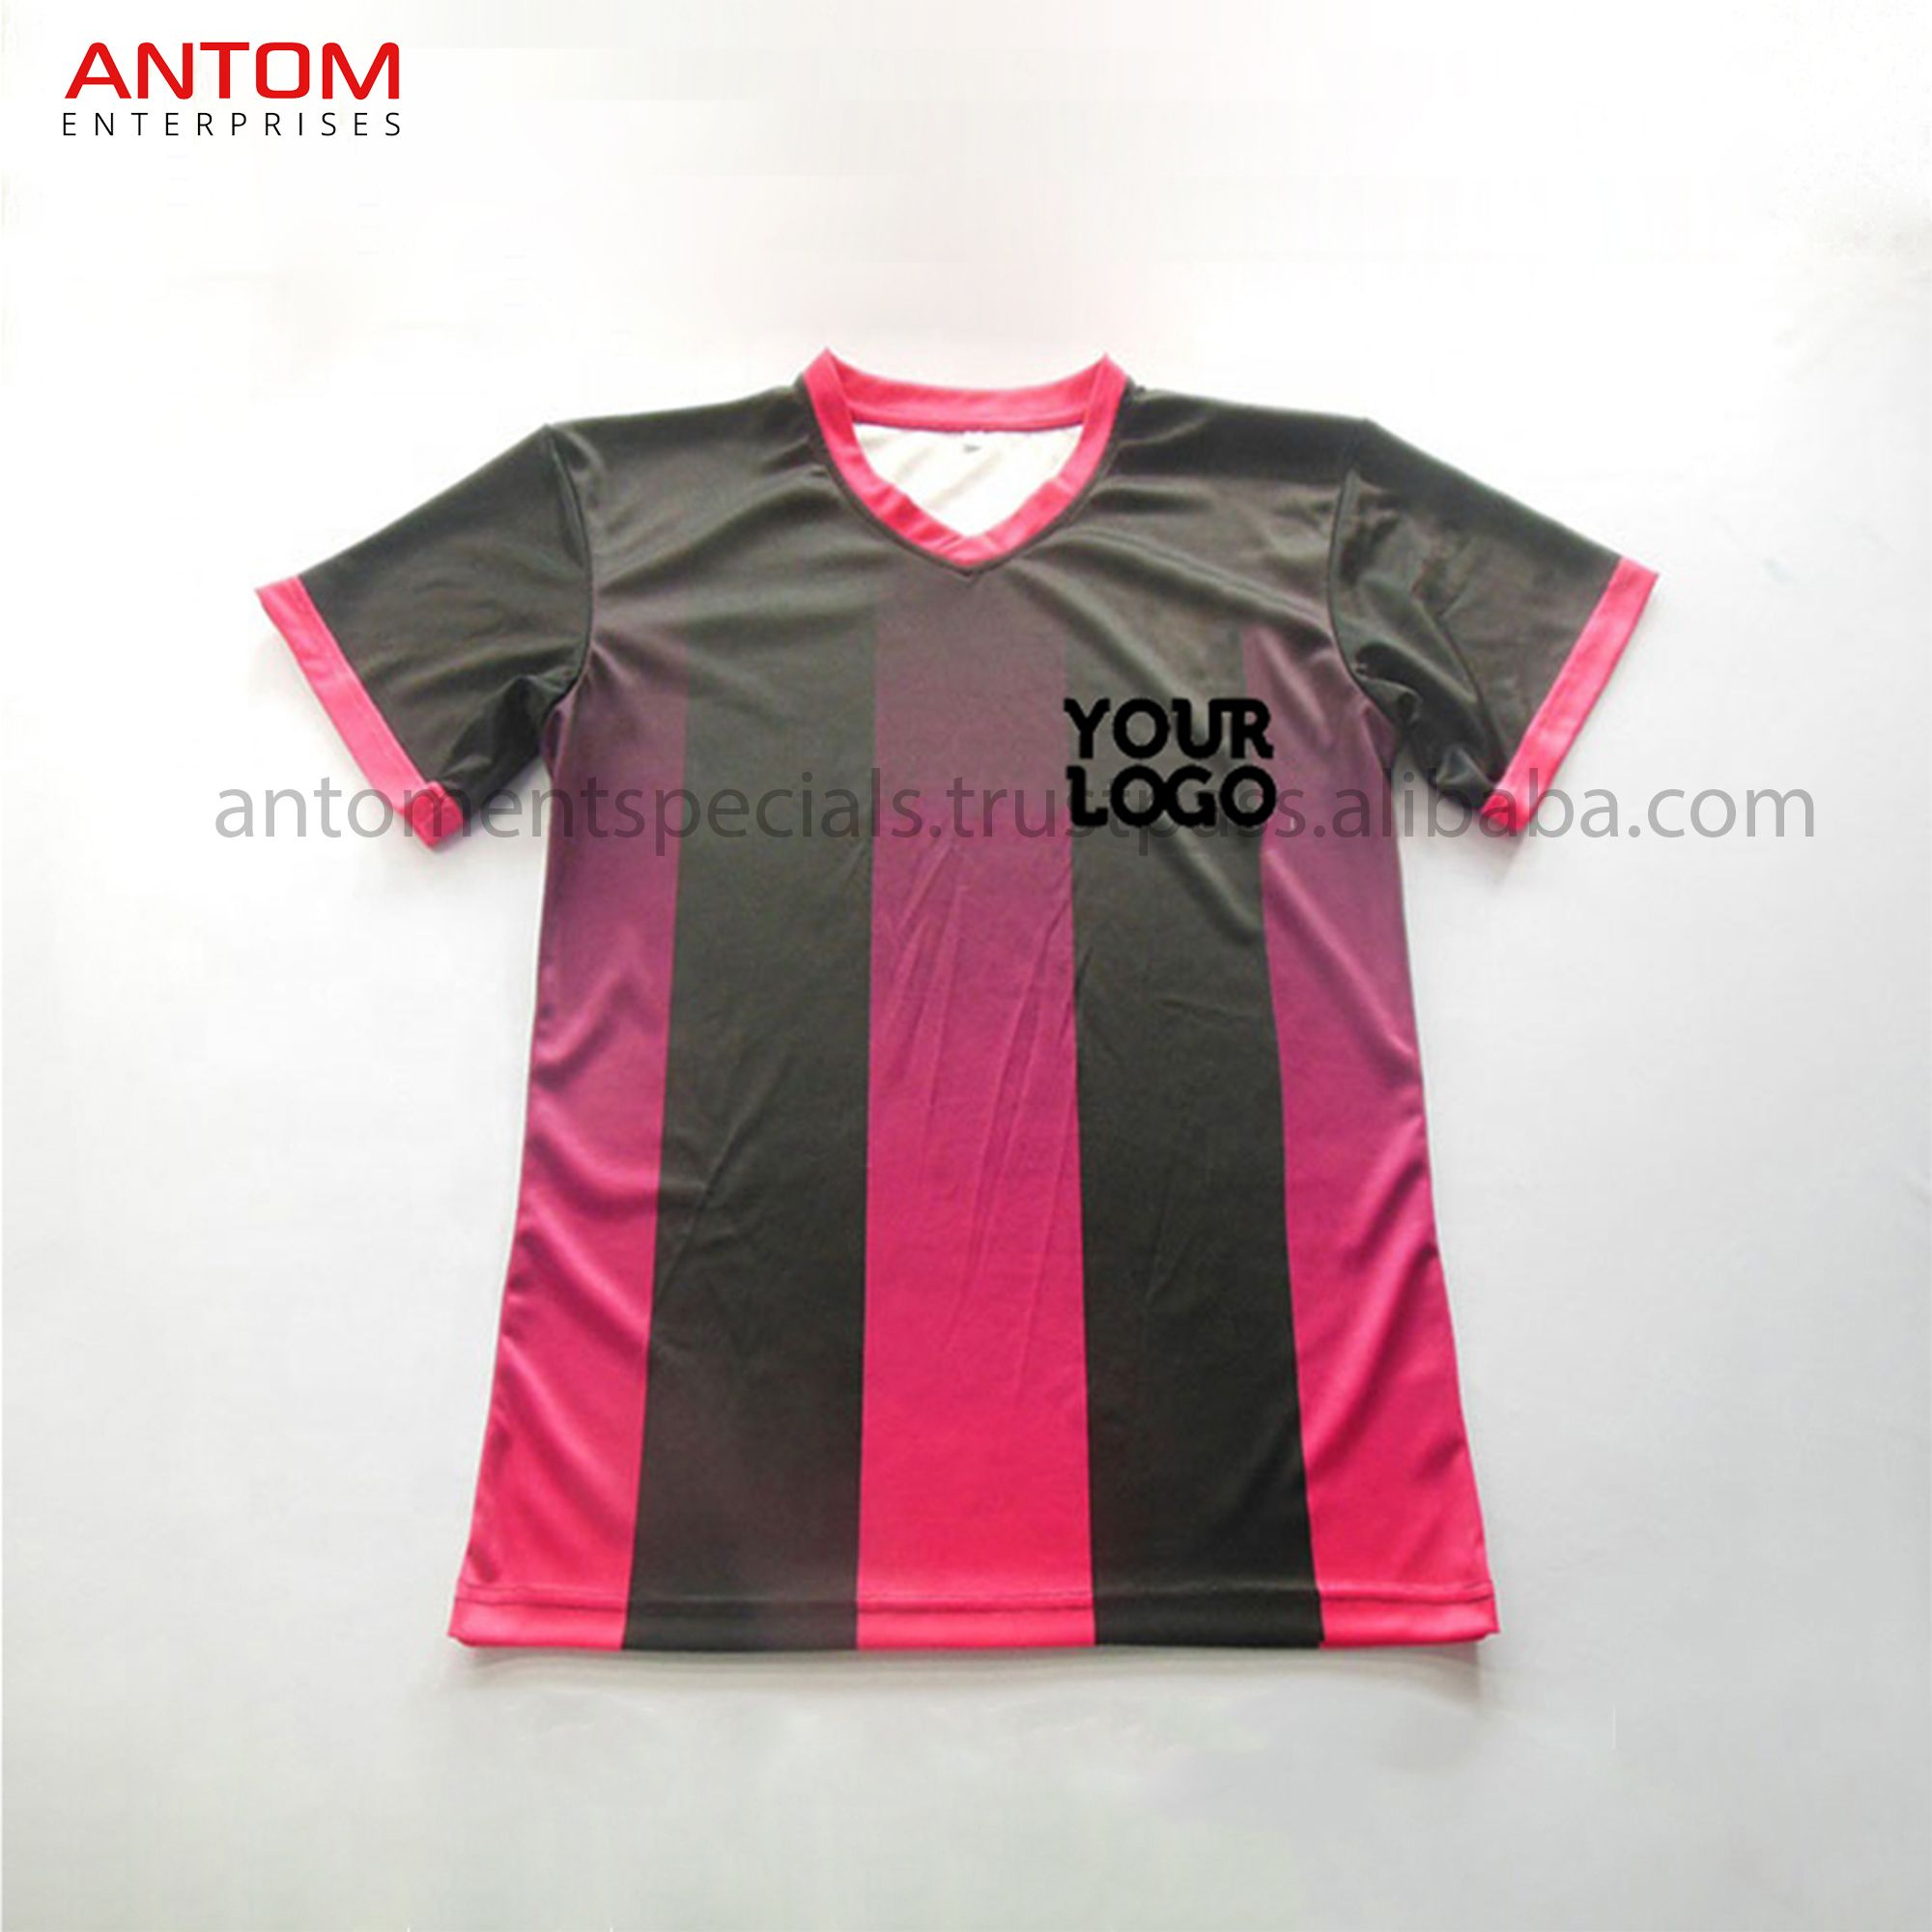 Pin by Antom Enterprises on Soccer Uniforms  d8c72cdd3